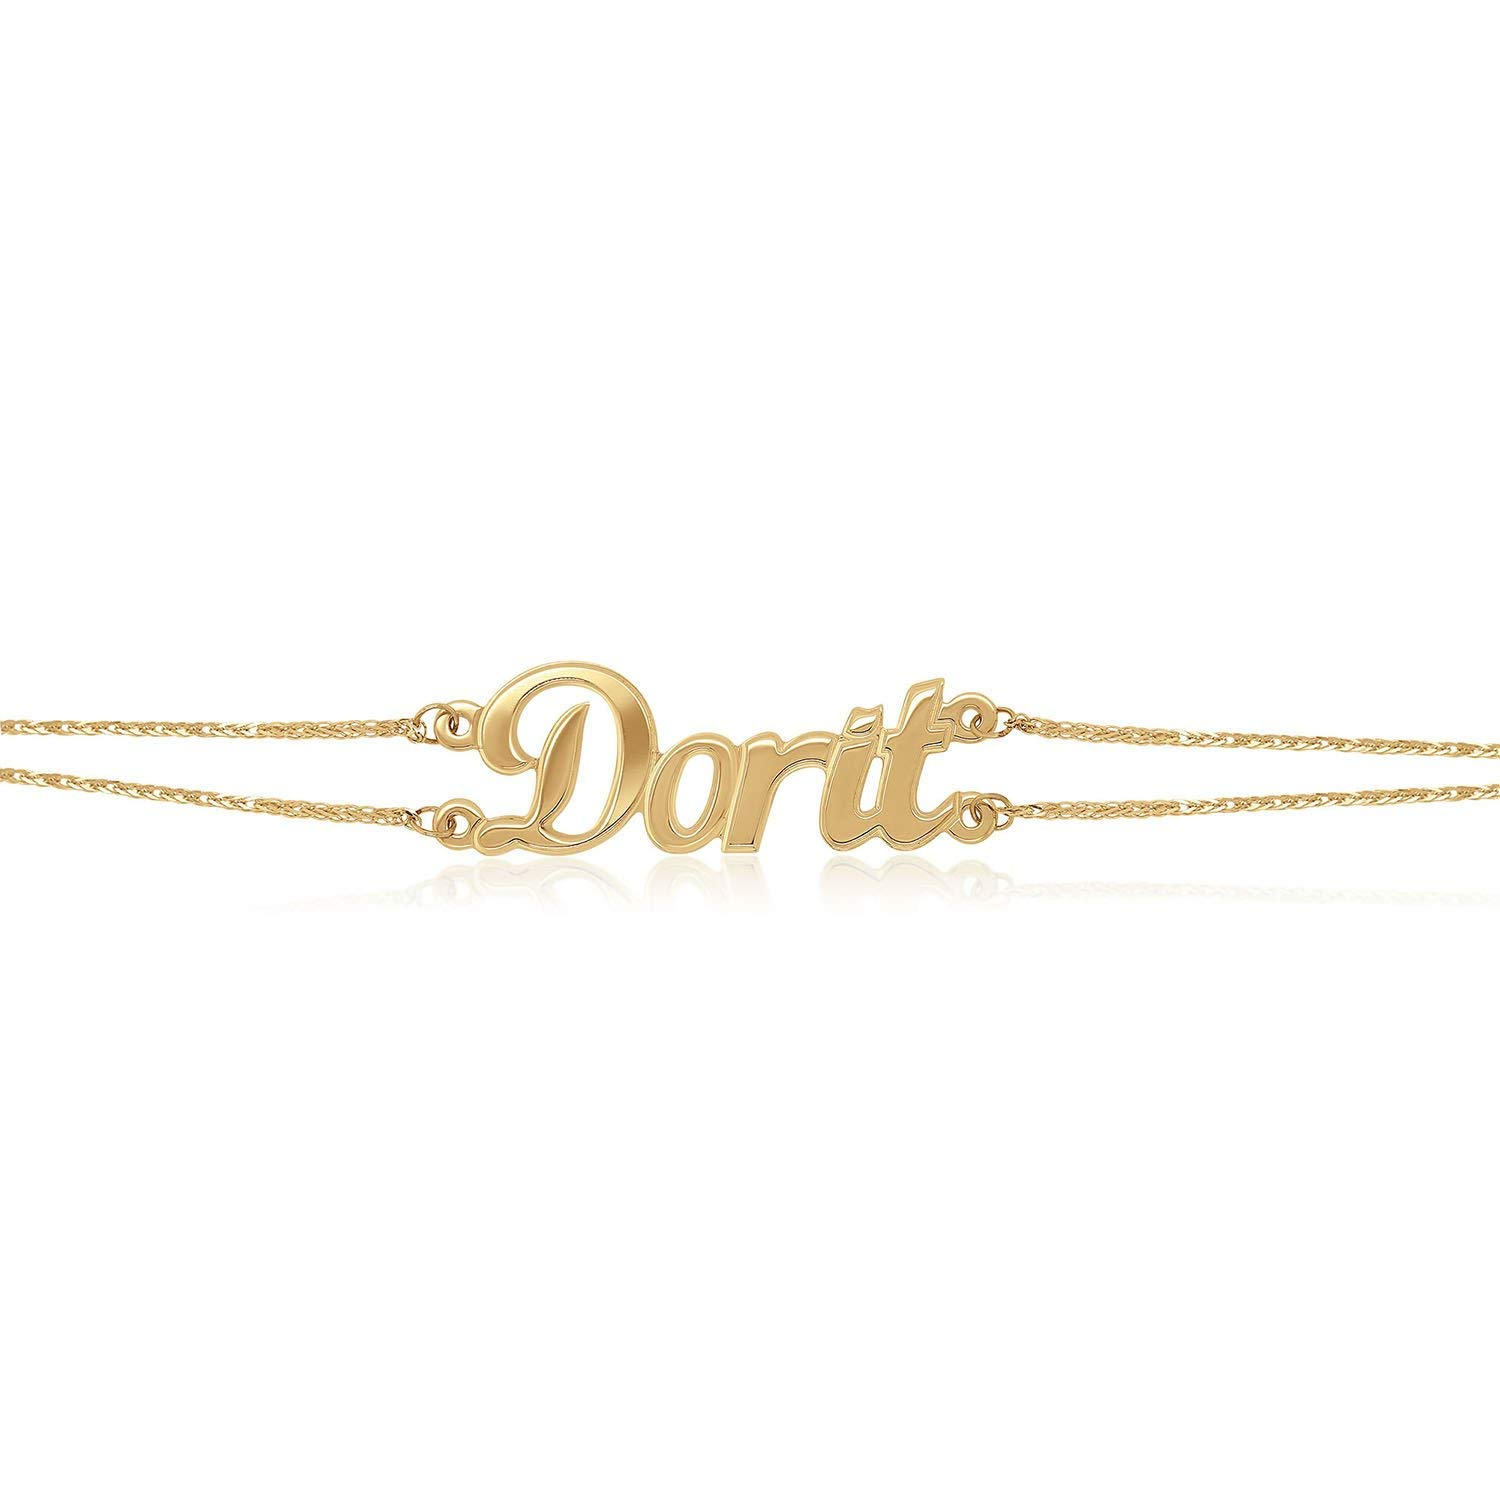 Personalized Double Classic Name Bracelet 14K Yellow Gold by Fresh